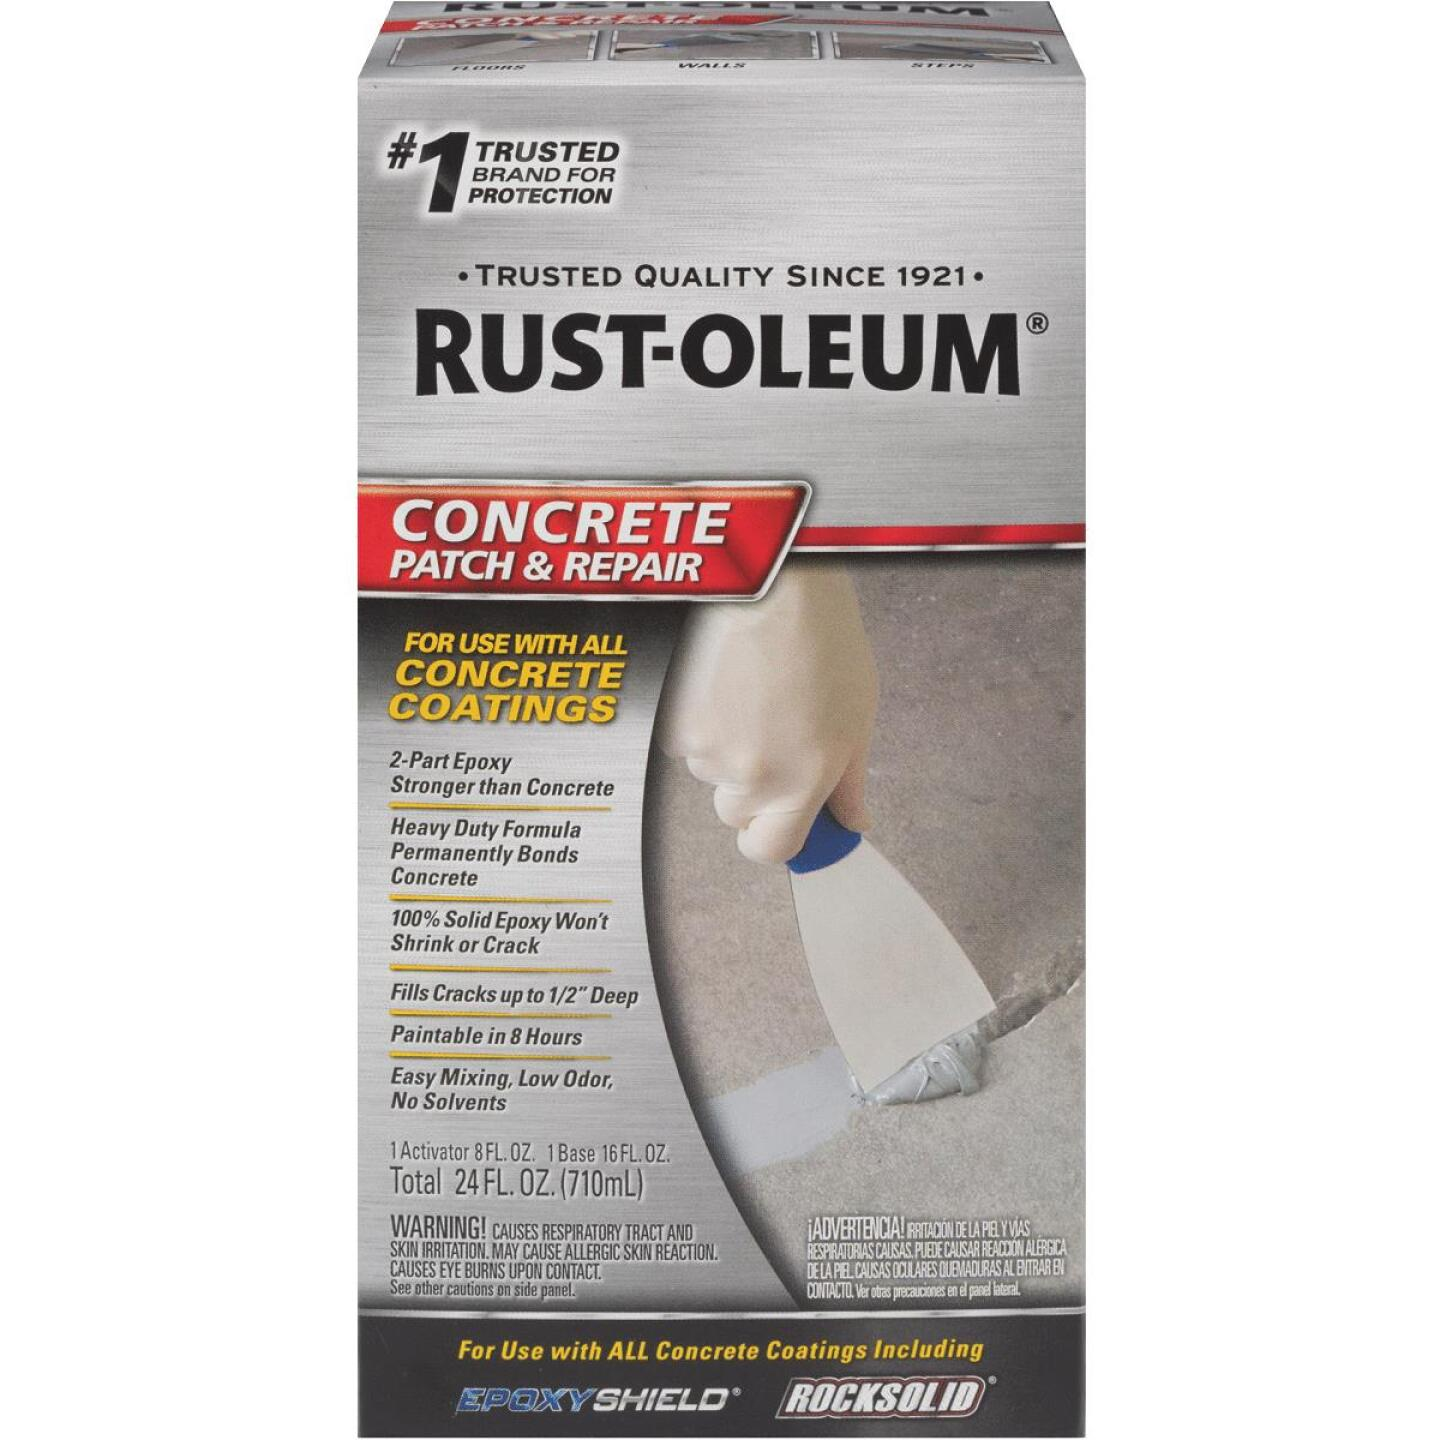 Rust-Oleum Concrete Patch & Repair Kit, Gray, 24 Oz. Image 1